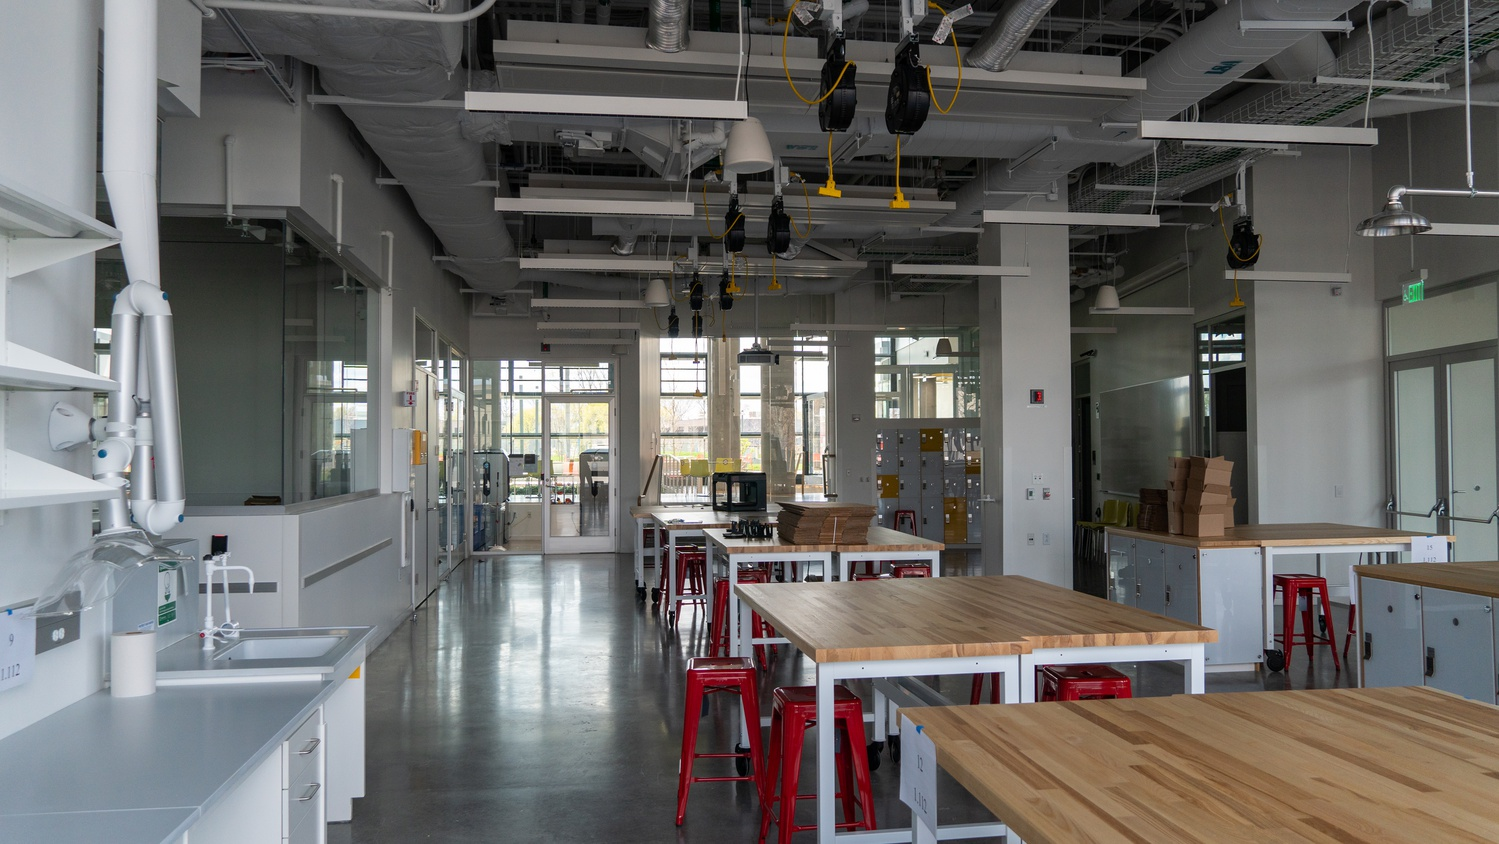 One section of the new Active Learning Labs, found on the first floor, is outfitted with new makerspace tools and machinery.